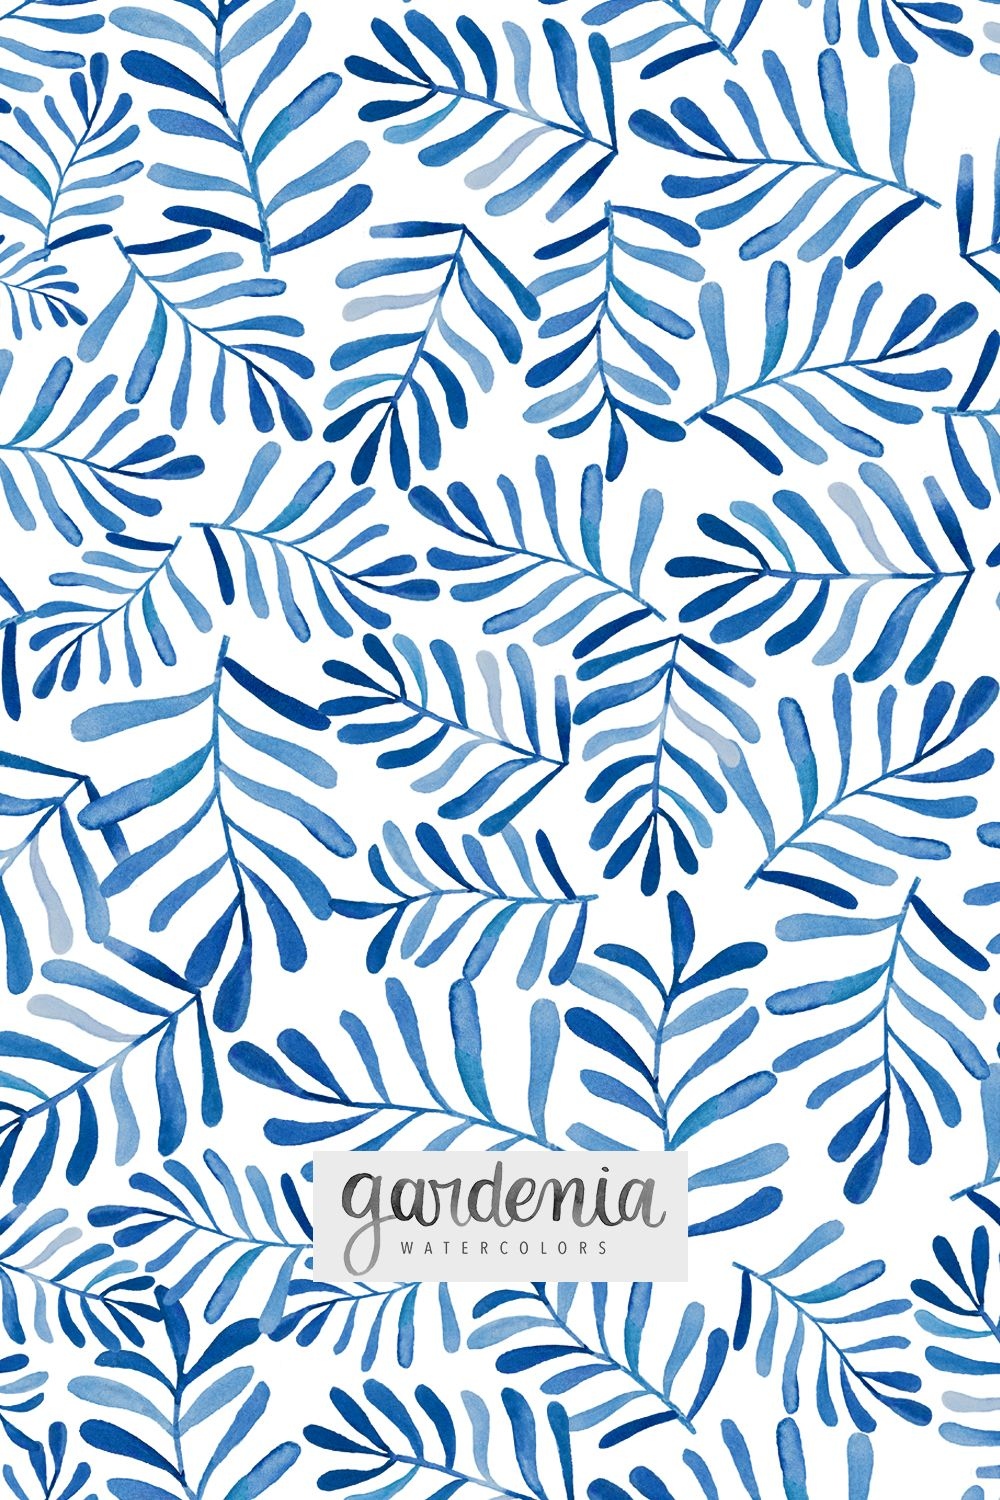 Gardenia Watercolors Fun Blue And White Design Hand Painted With